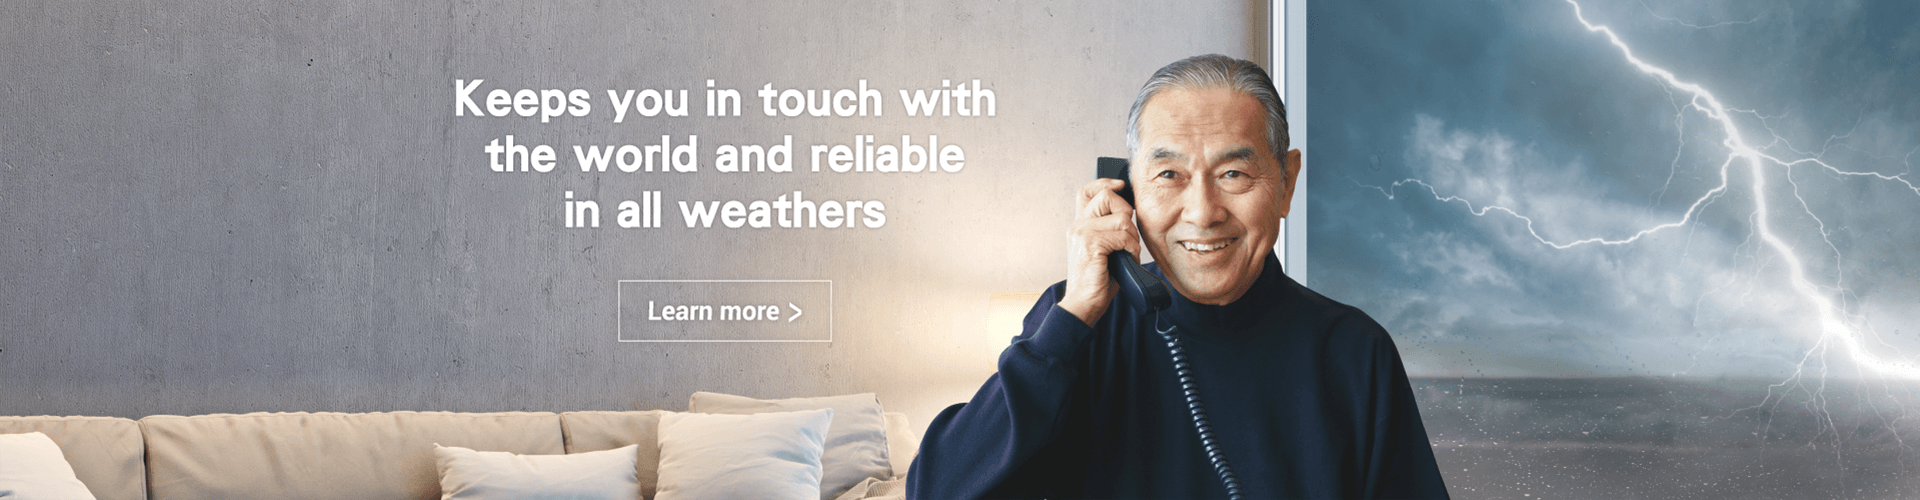 Keeps you in touch with the world and<br/>reliable in all weathers